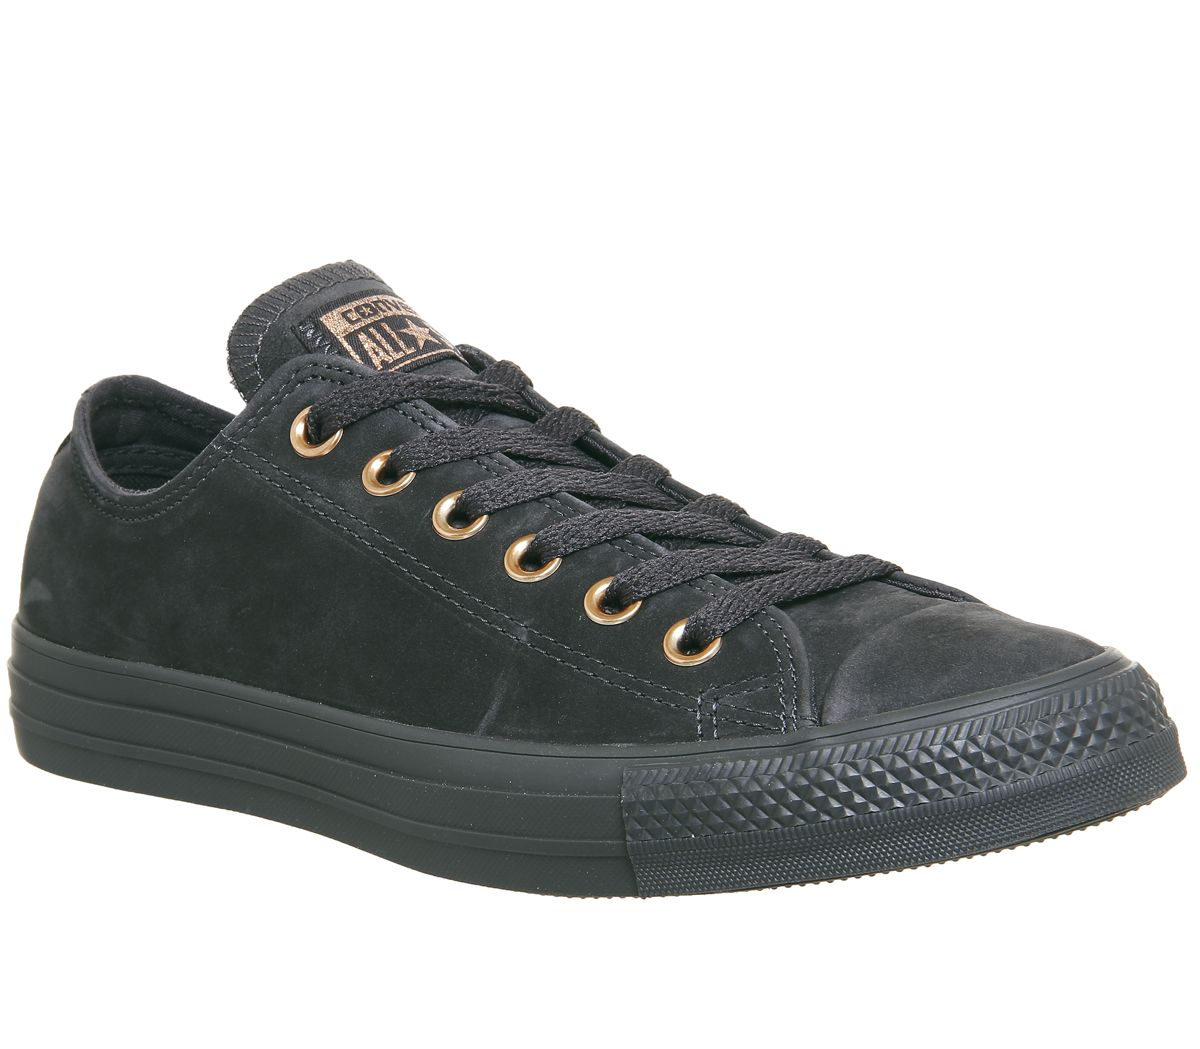 6399626fddf4 Converse Allstar Low Lthr Almost Black Rose Gold - Unisex Sports